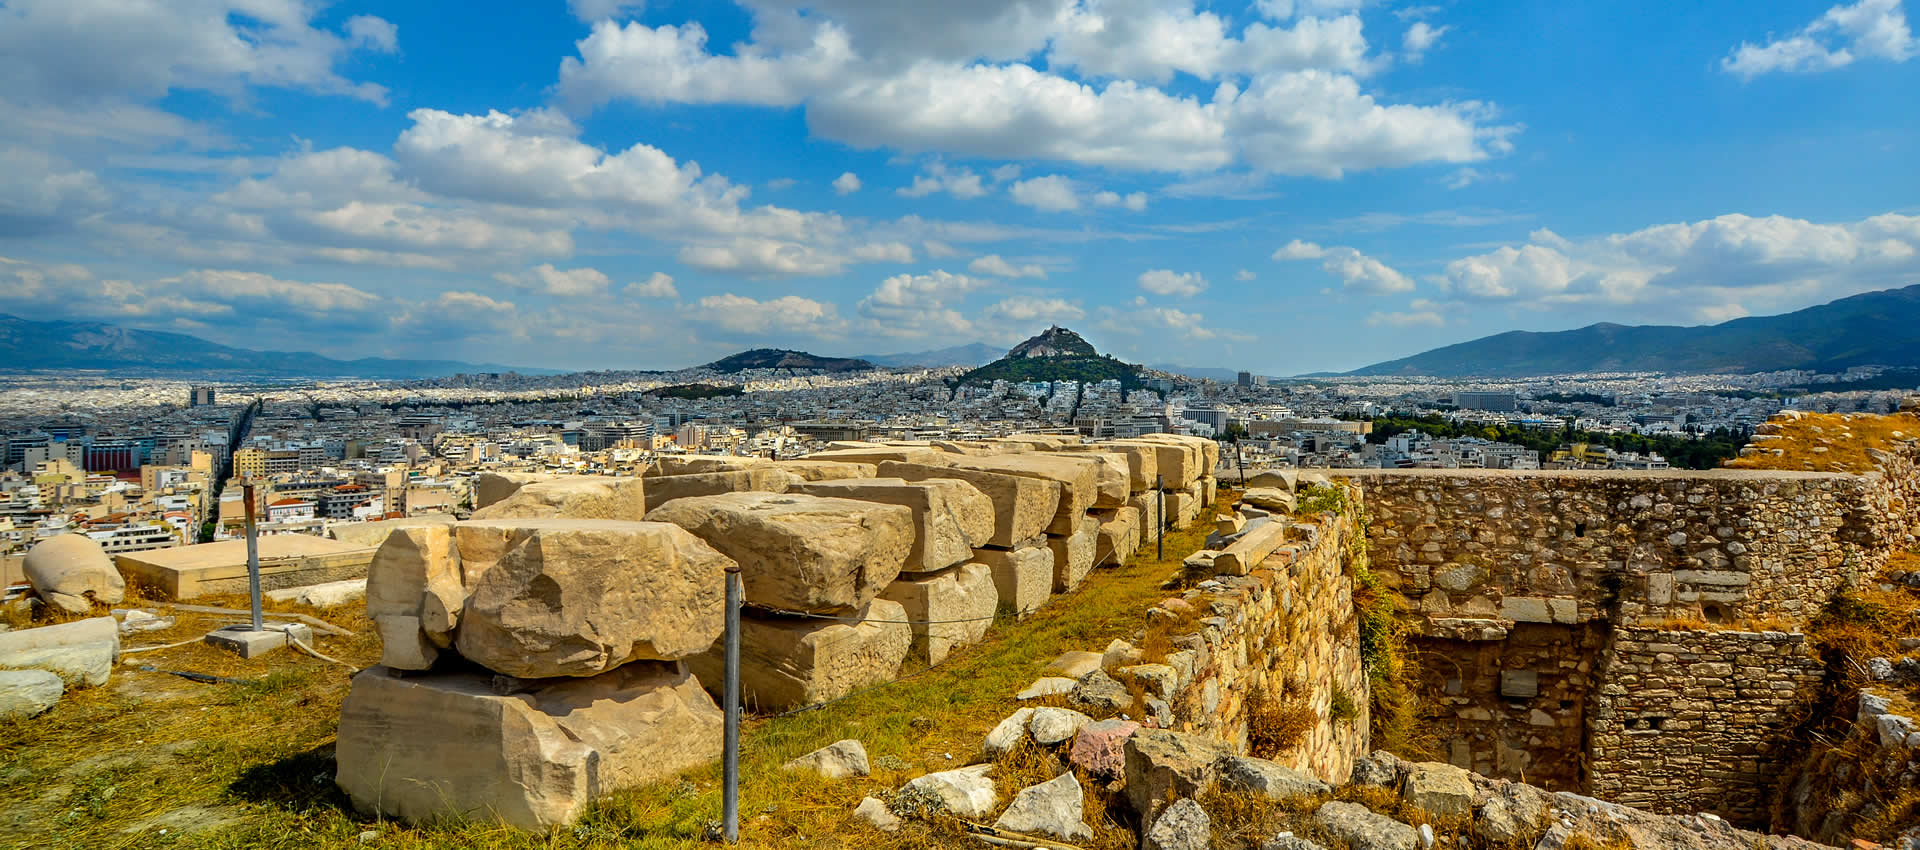 Luxury Private Excursions in Athens and Greek Mainland. Tours to Acropolis, Greek Museums, Plaka,- Delphi, Epidavros, Thermopylae, Corinth, Meteora